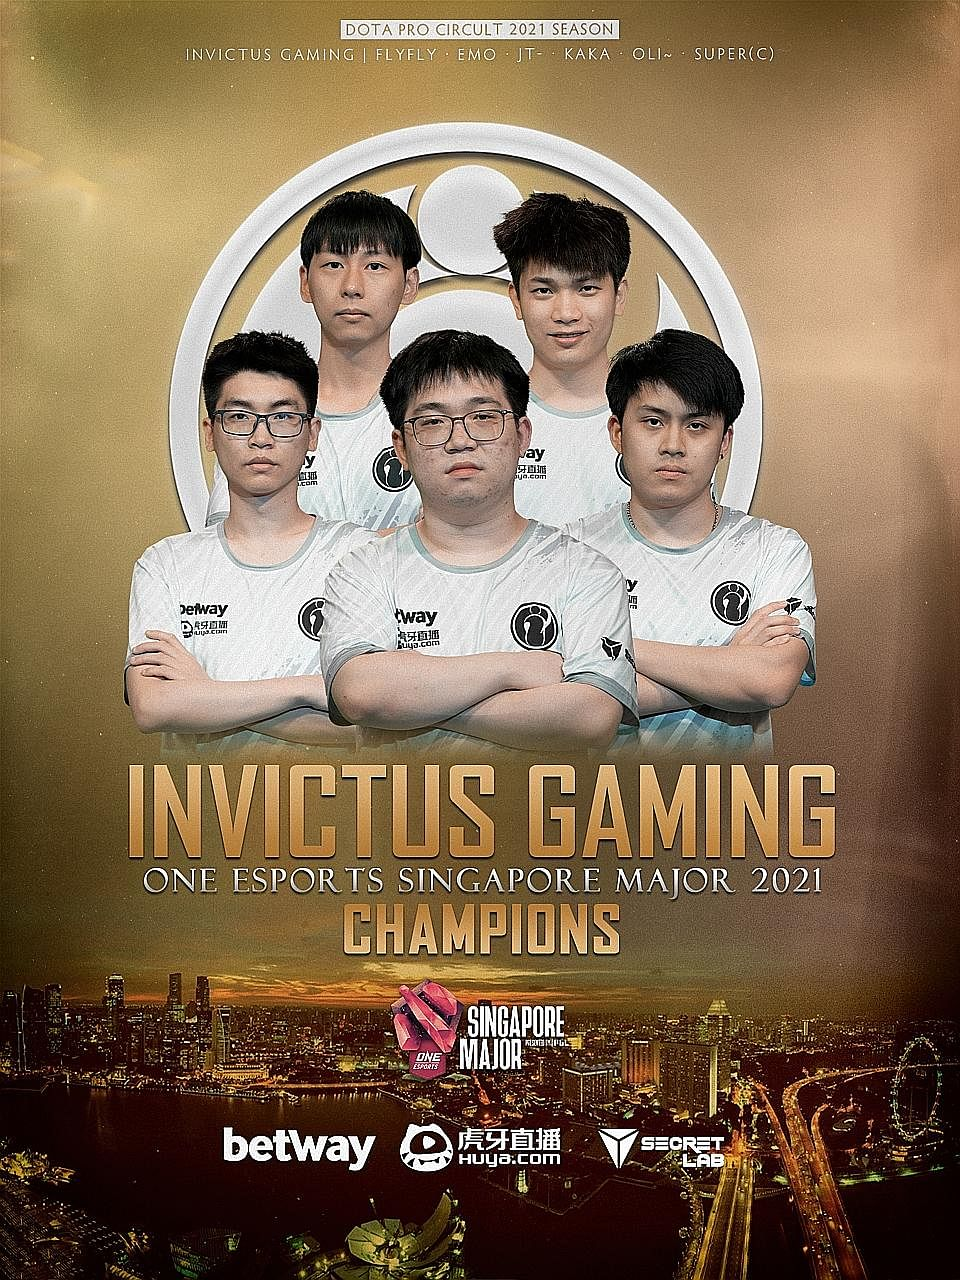 Hu Liangzhi (back row, right) played a big role in Invictus Gaming's 3-2 comeback victory in the grand final of the One Esports Dota 2 Singapore Major yesterday.